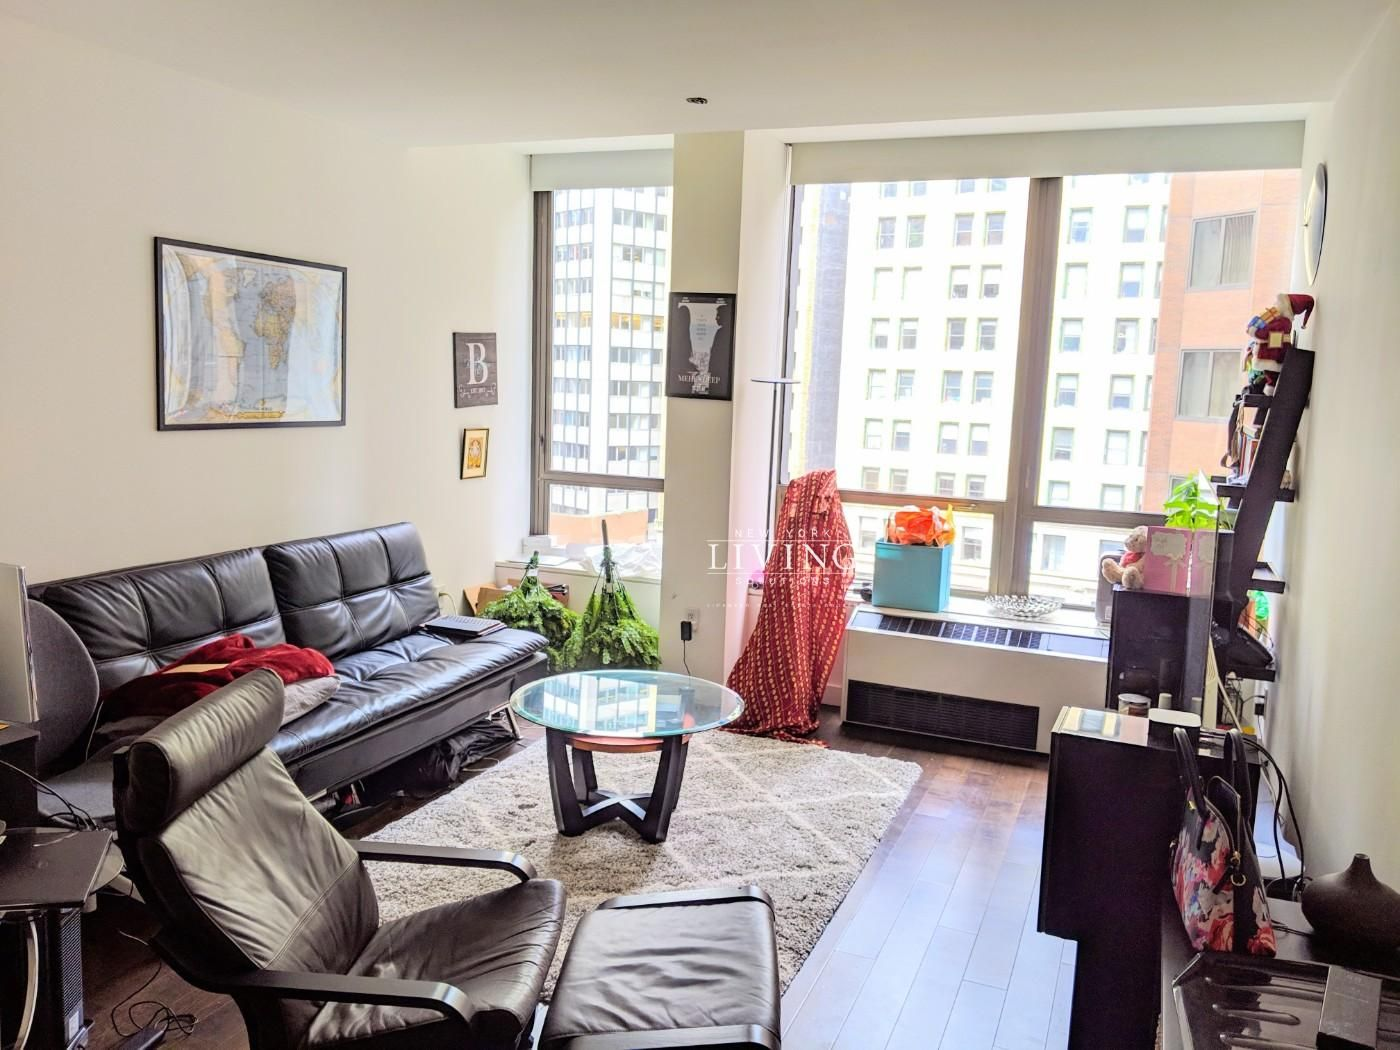 1 Bedroom 1 Bathroom Apartment For Sale In Financial District